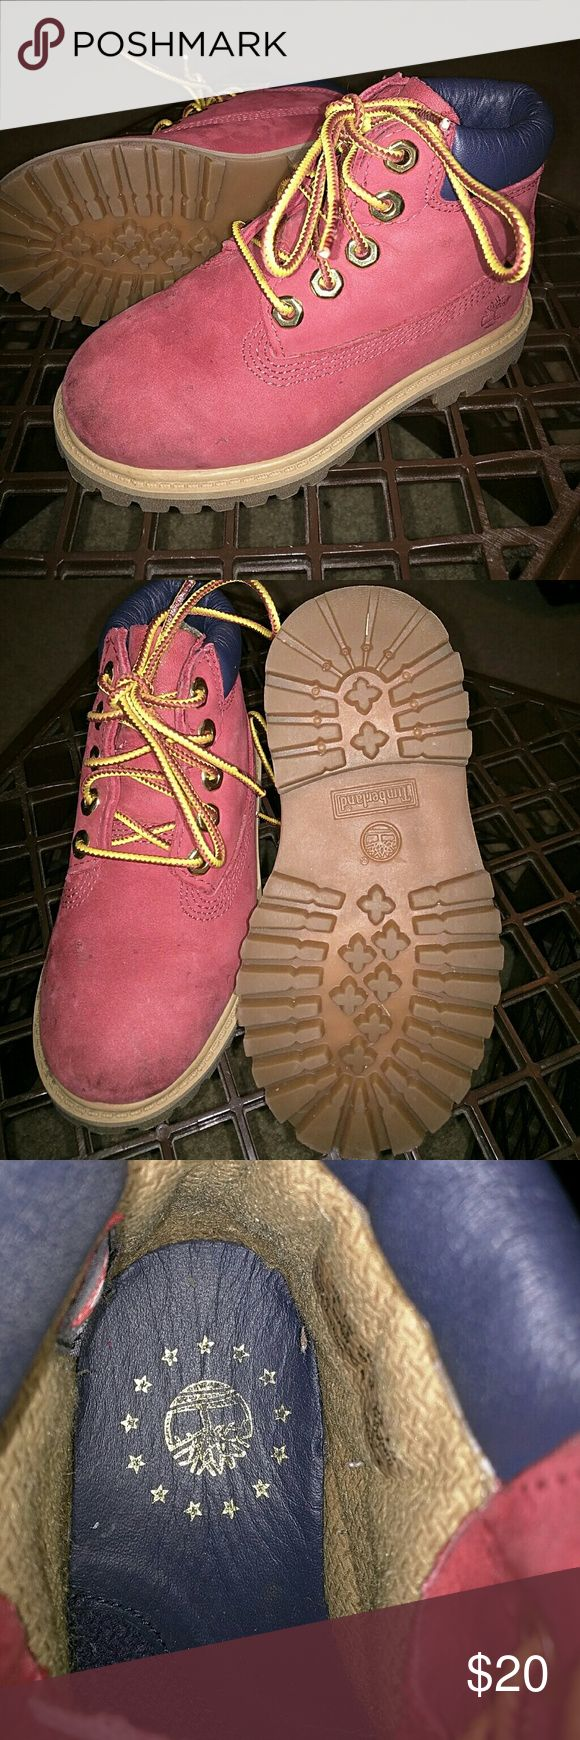 Adorable Red Timberland Boots Authentic Timberland boots. Red  and brown. Gently used one season. Timberland Shoes Boots